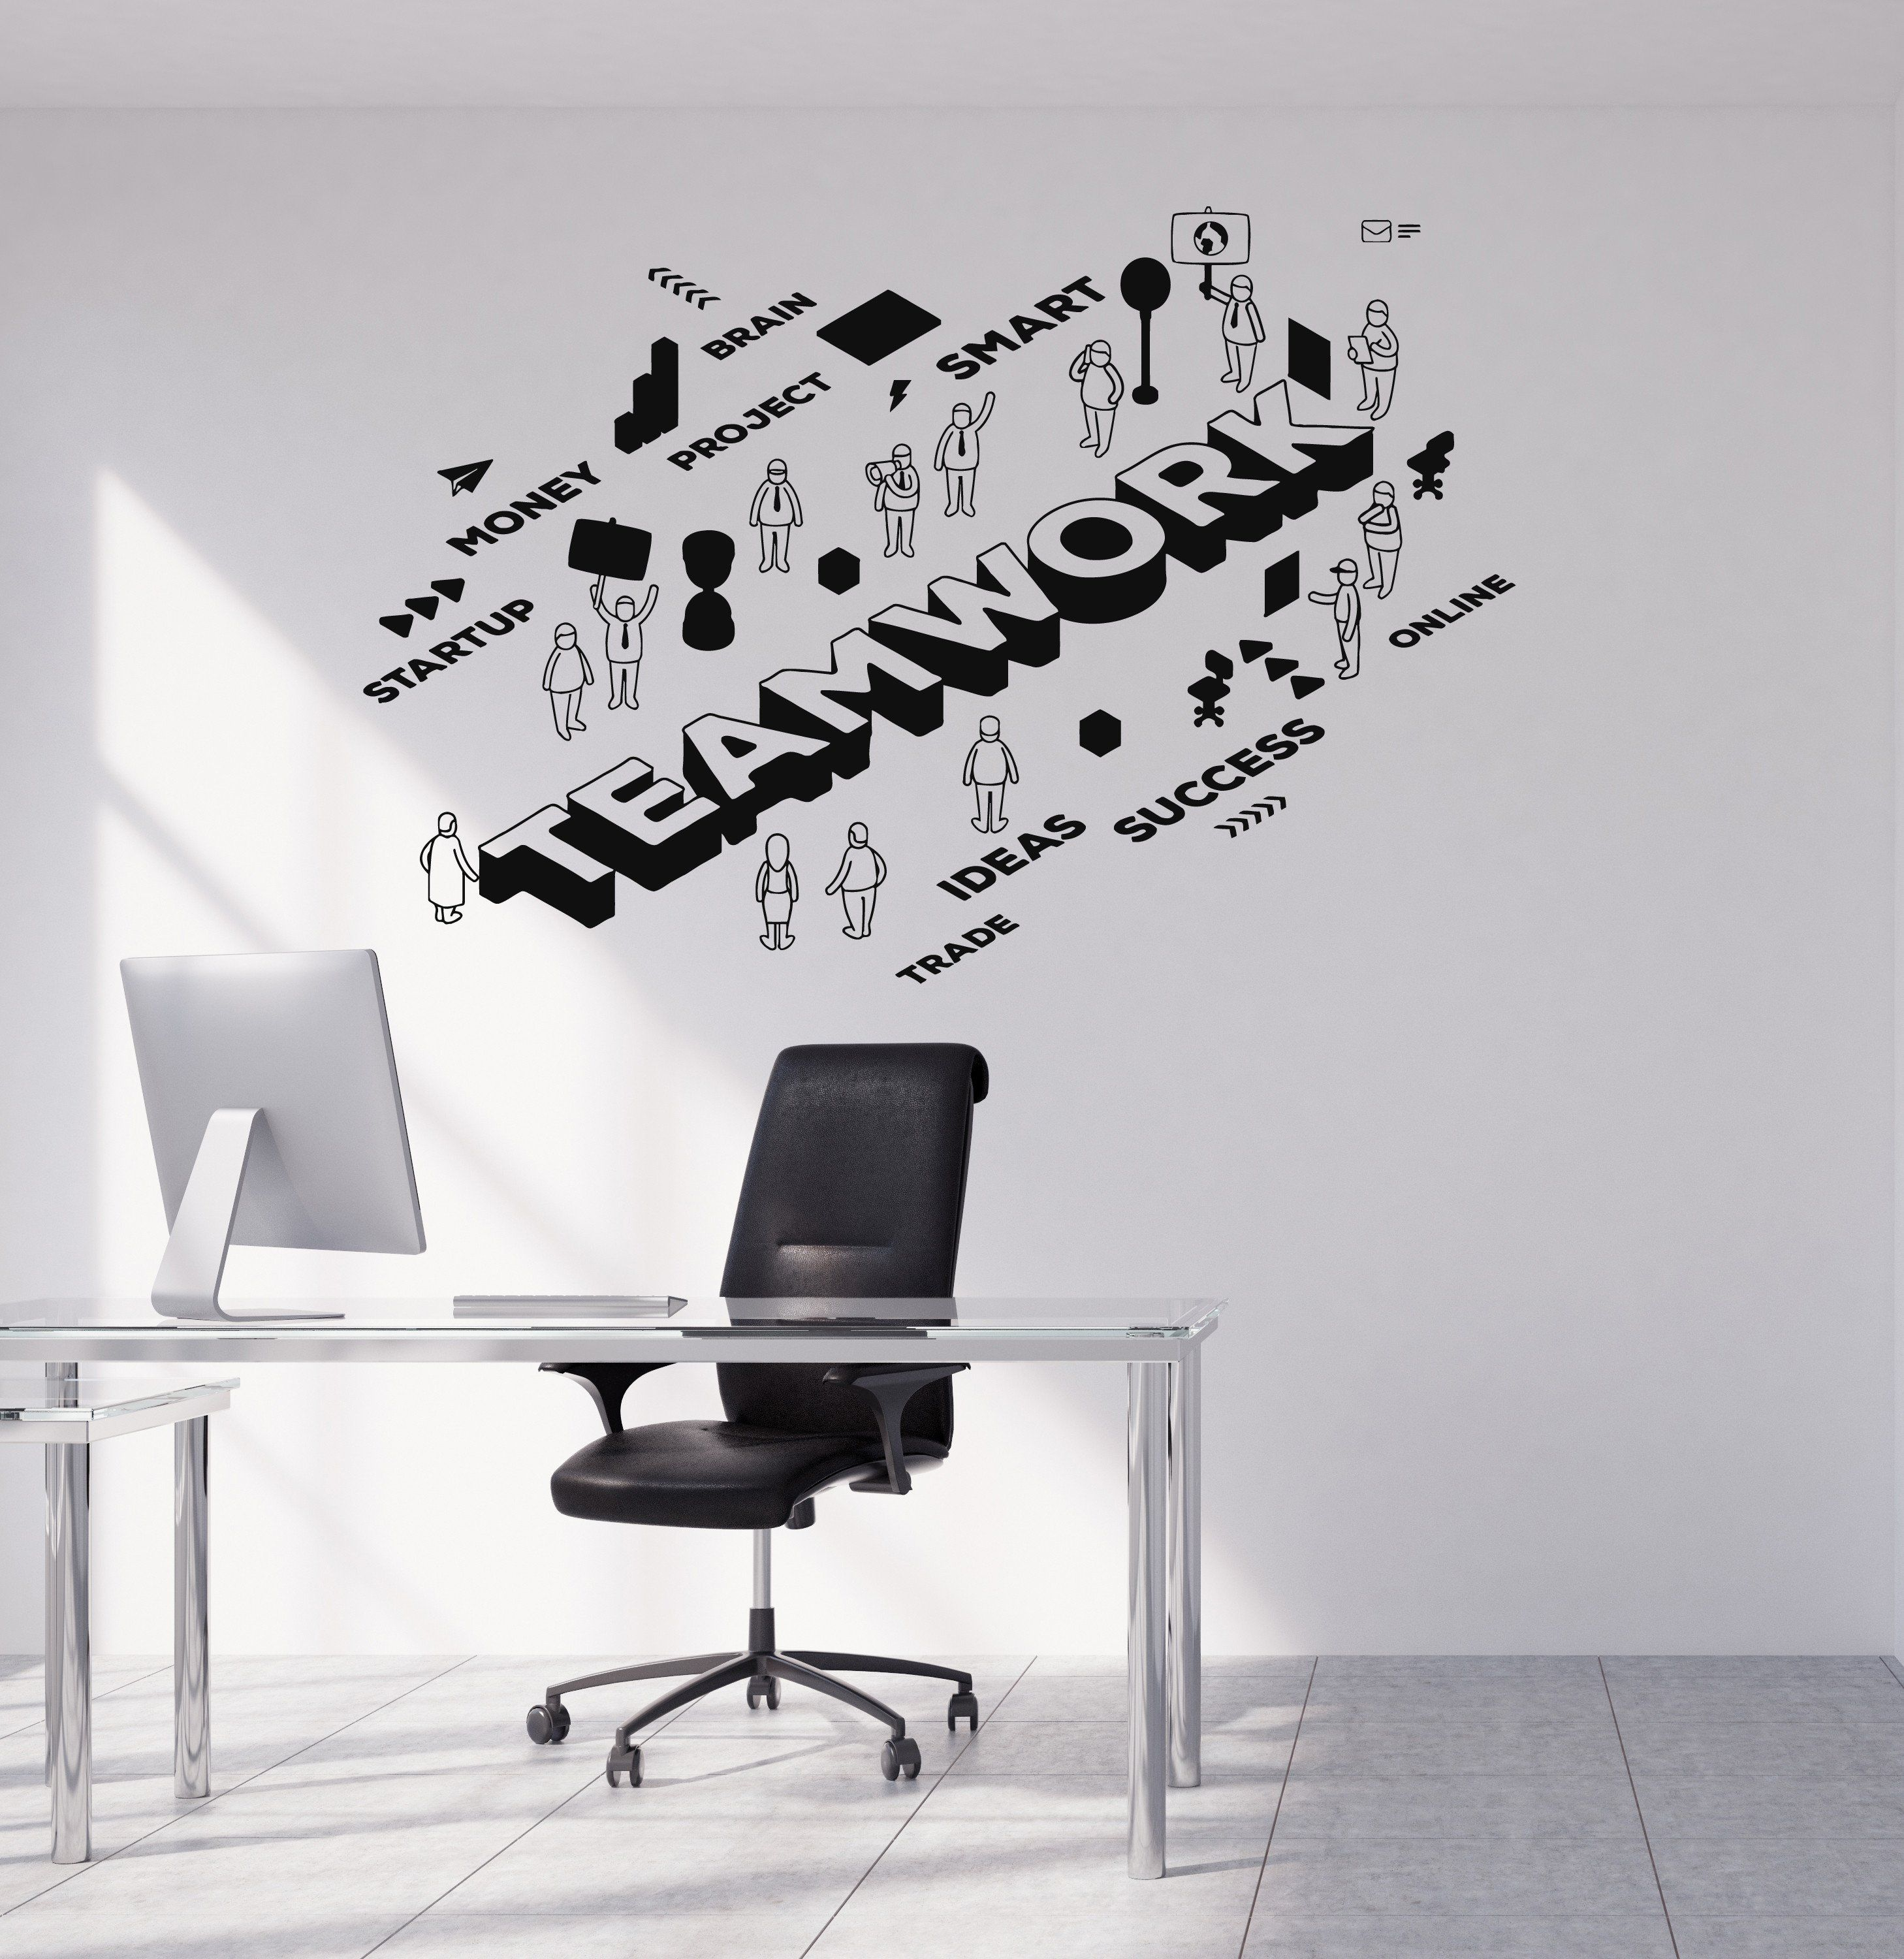 Teamwork Motivation Wall Stickers Office Decorations Office Worker Puzzle Decals